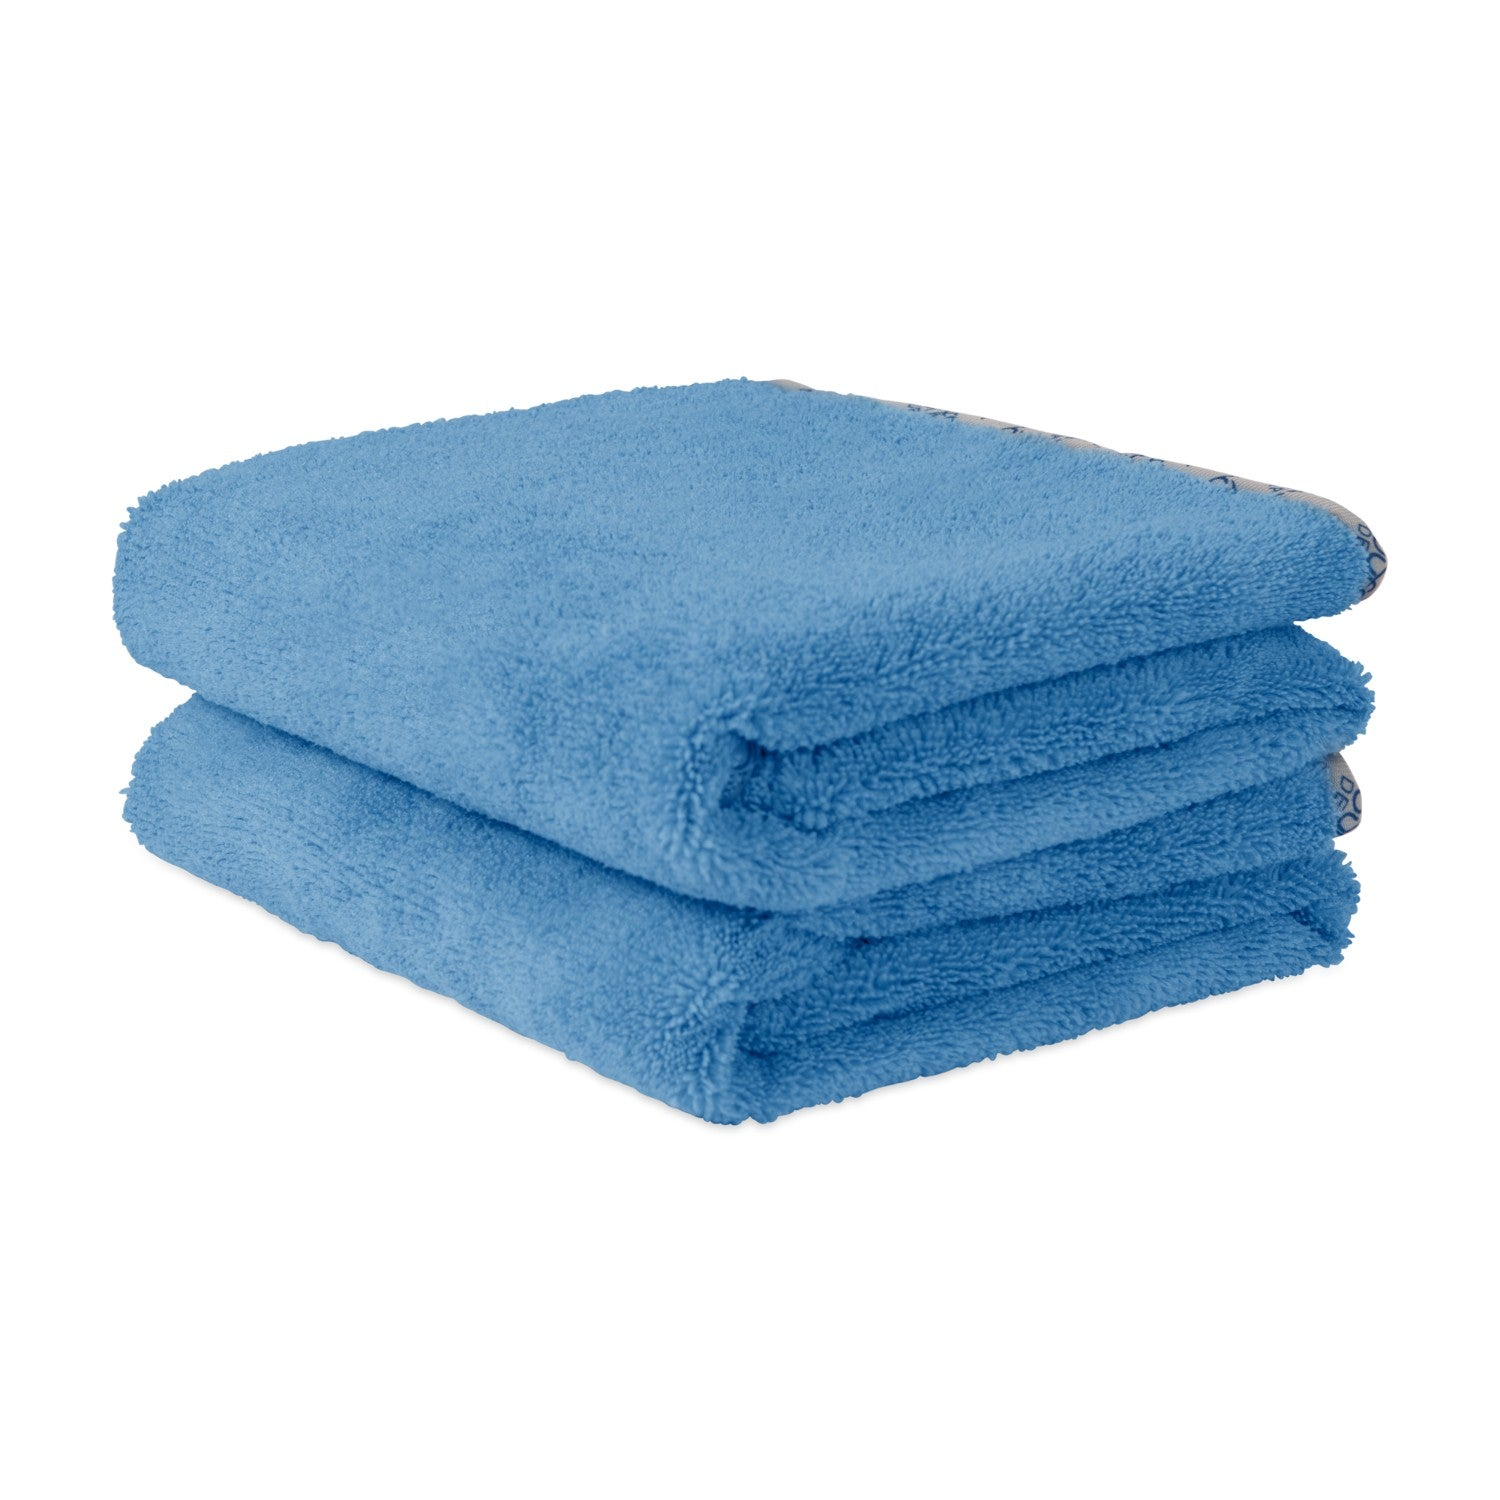 Blue Microfiber Car Drying Towel For Auto Detailing